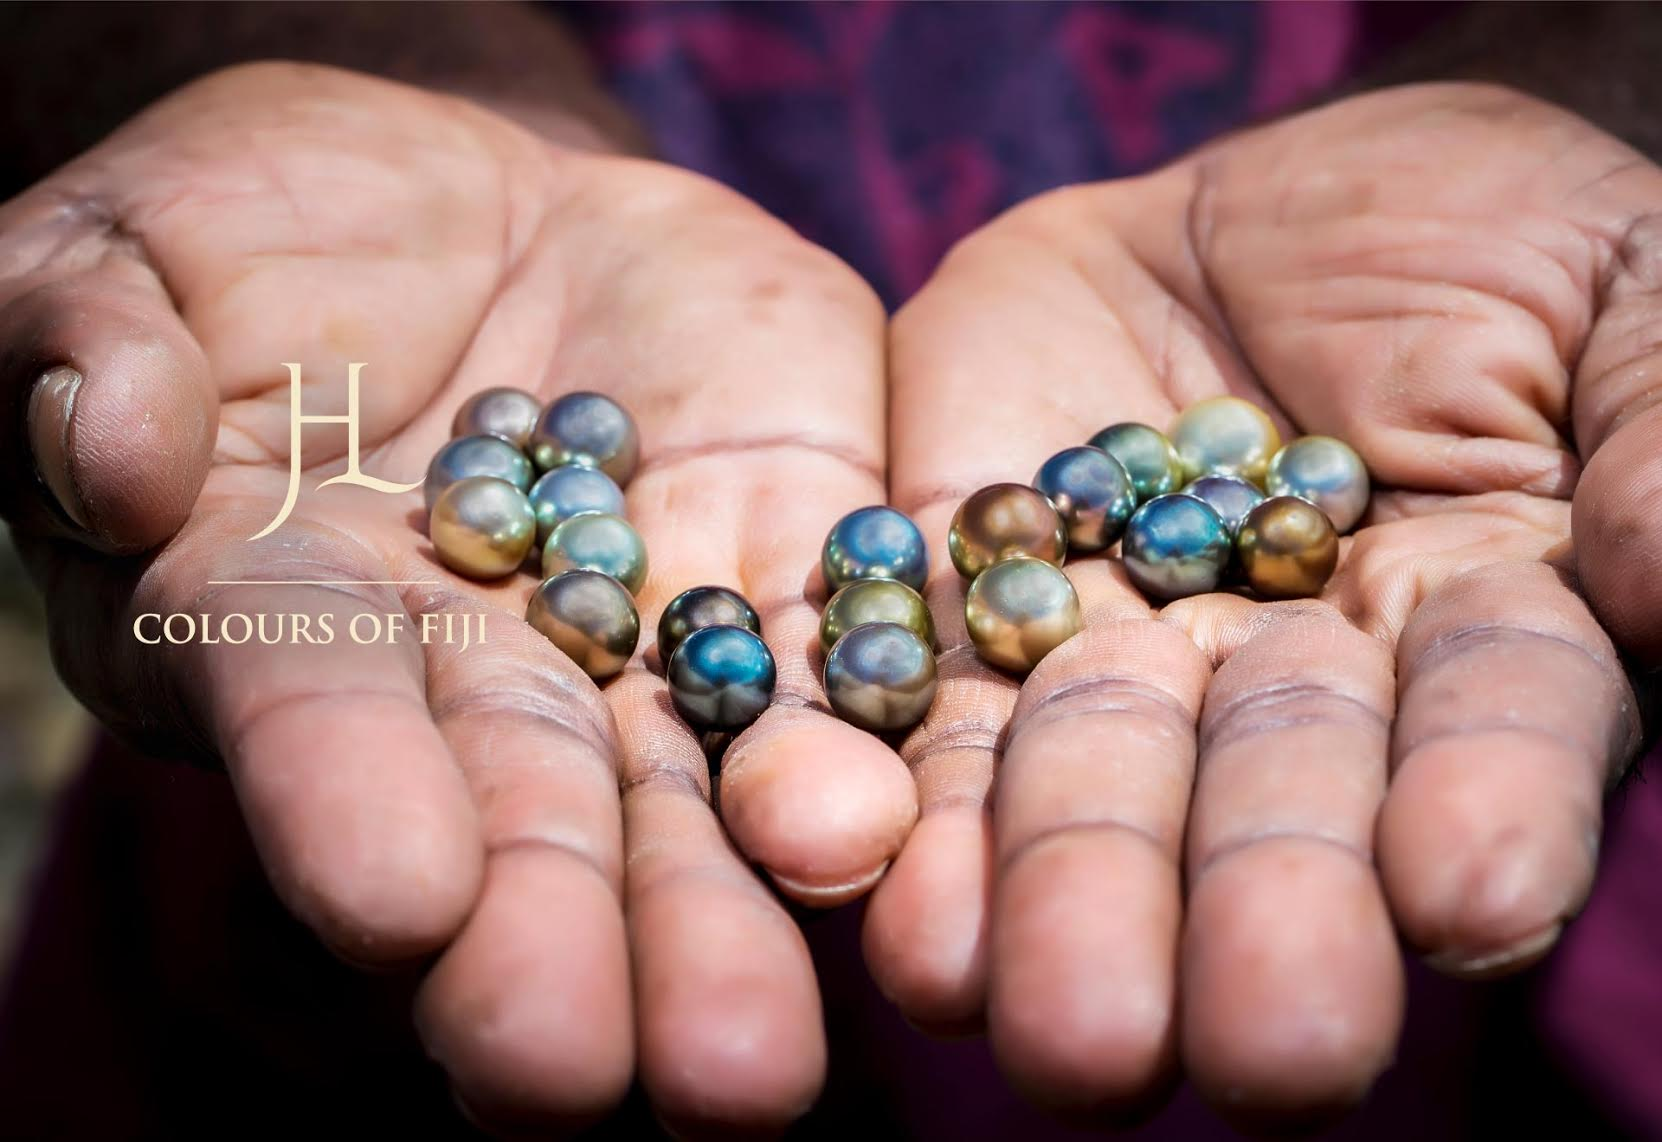 Colours of Fiji Pearls